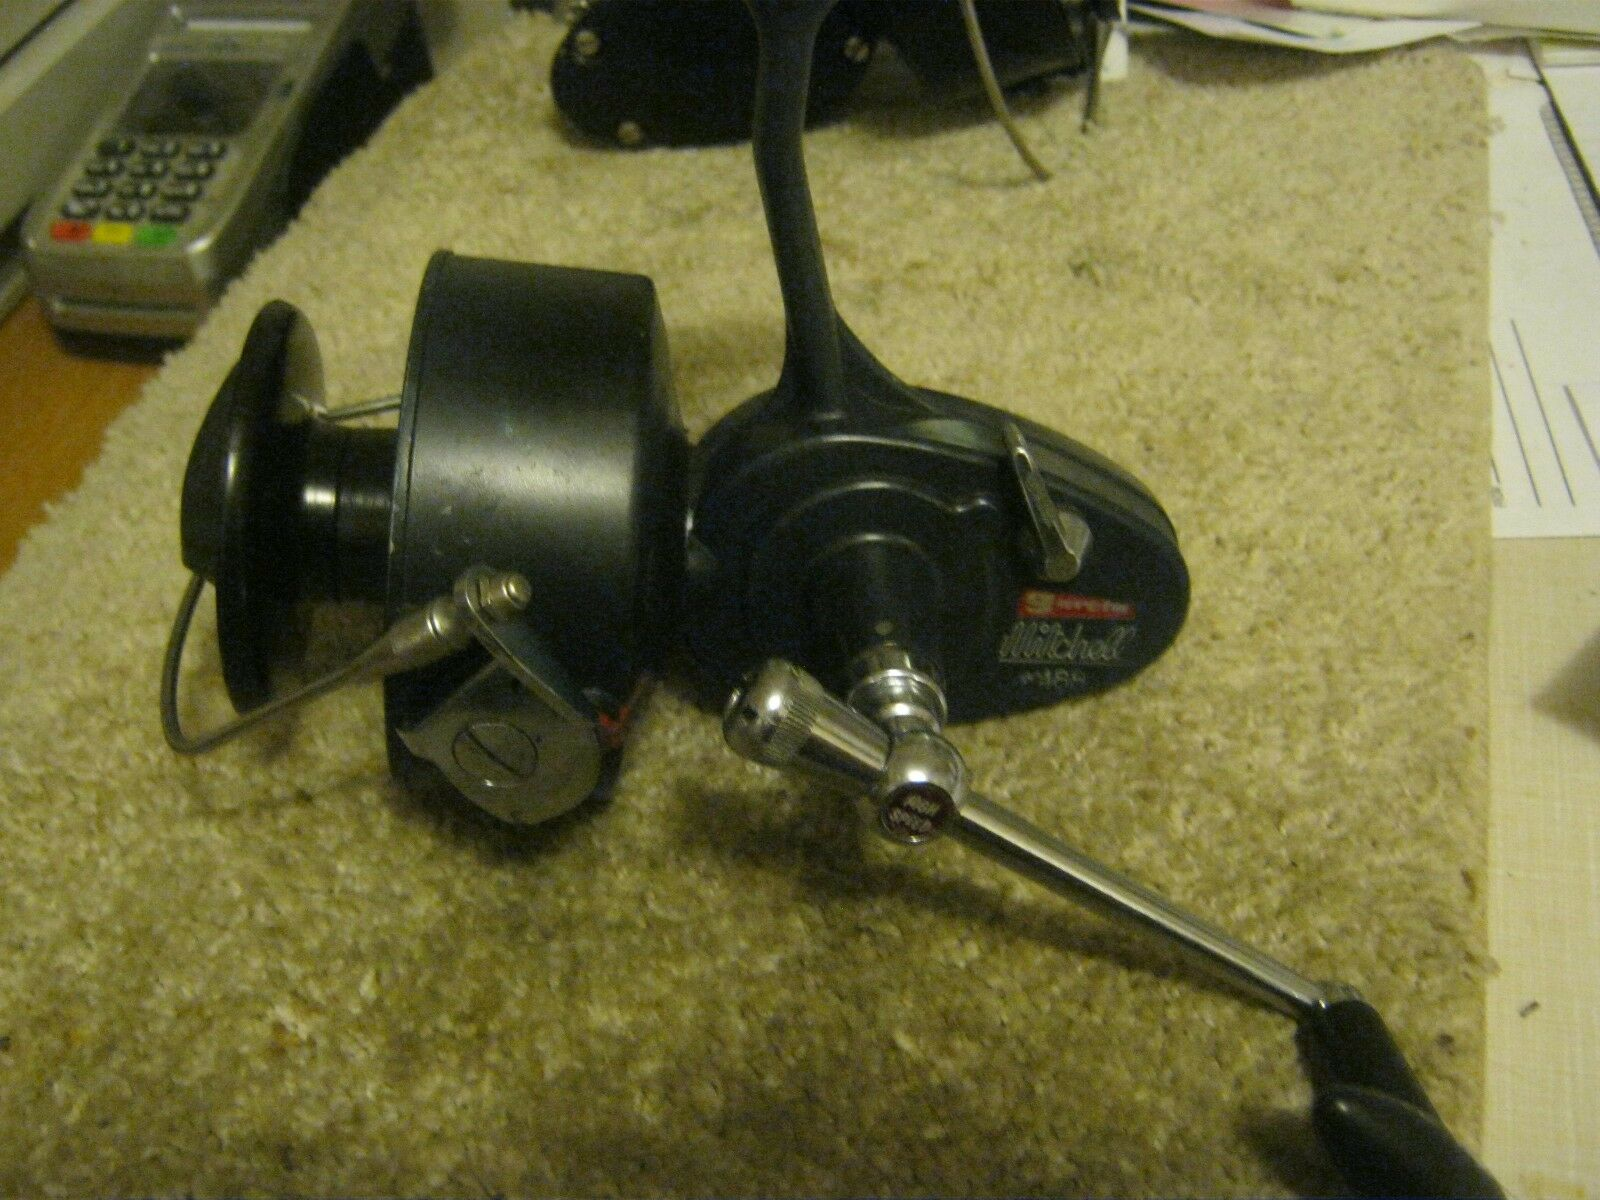 Garcia Mitchell 486 saltwater reel - good shape, reconditioned